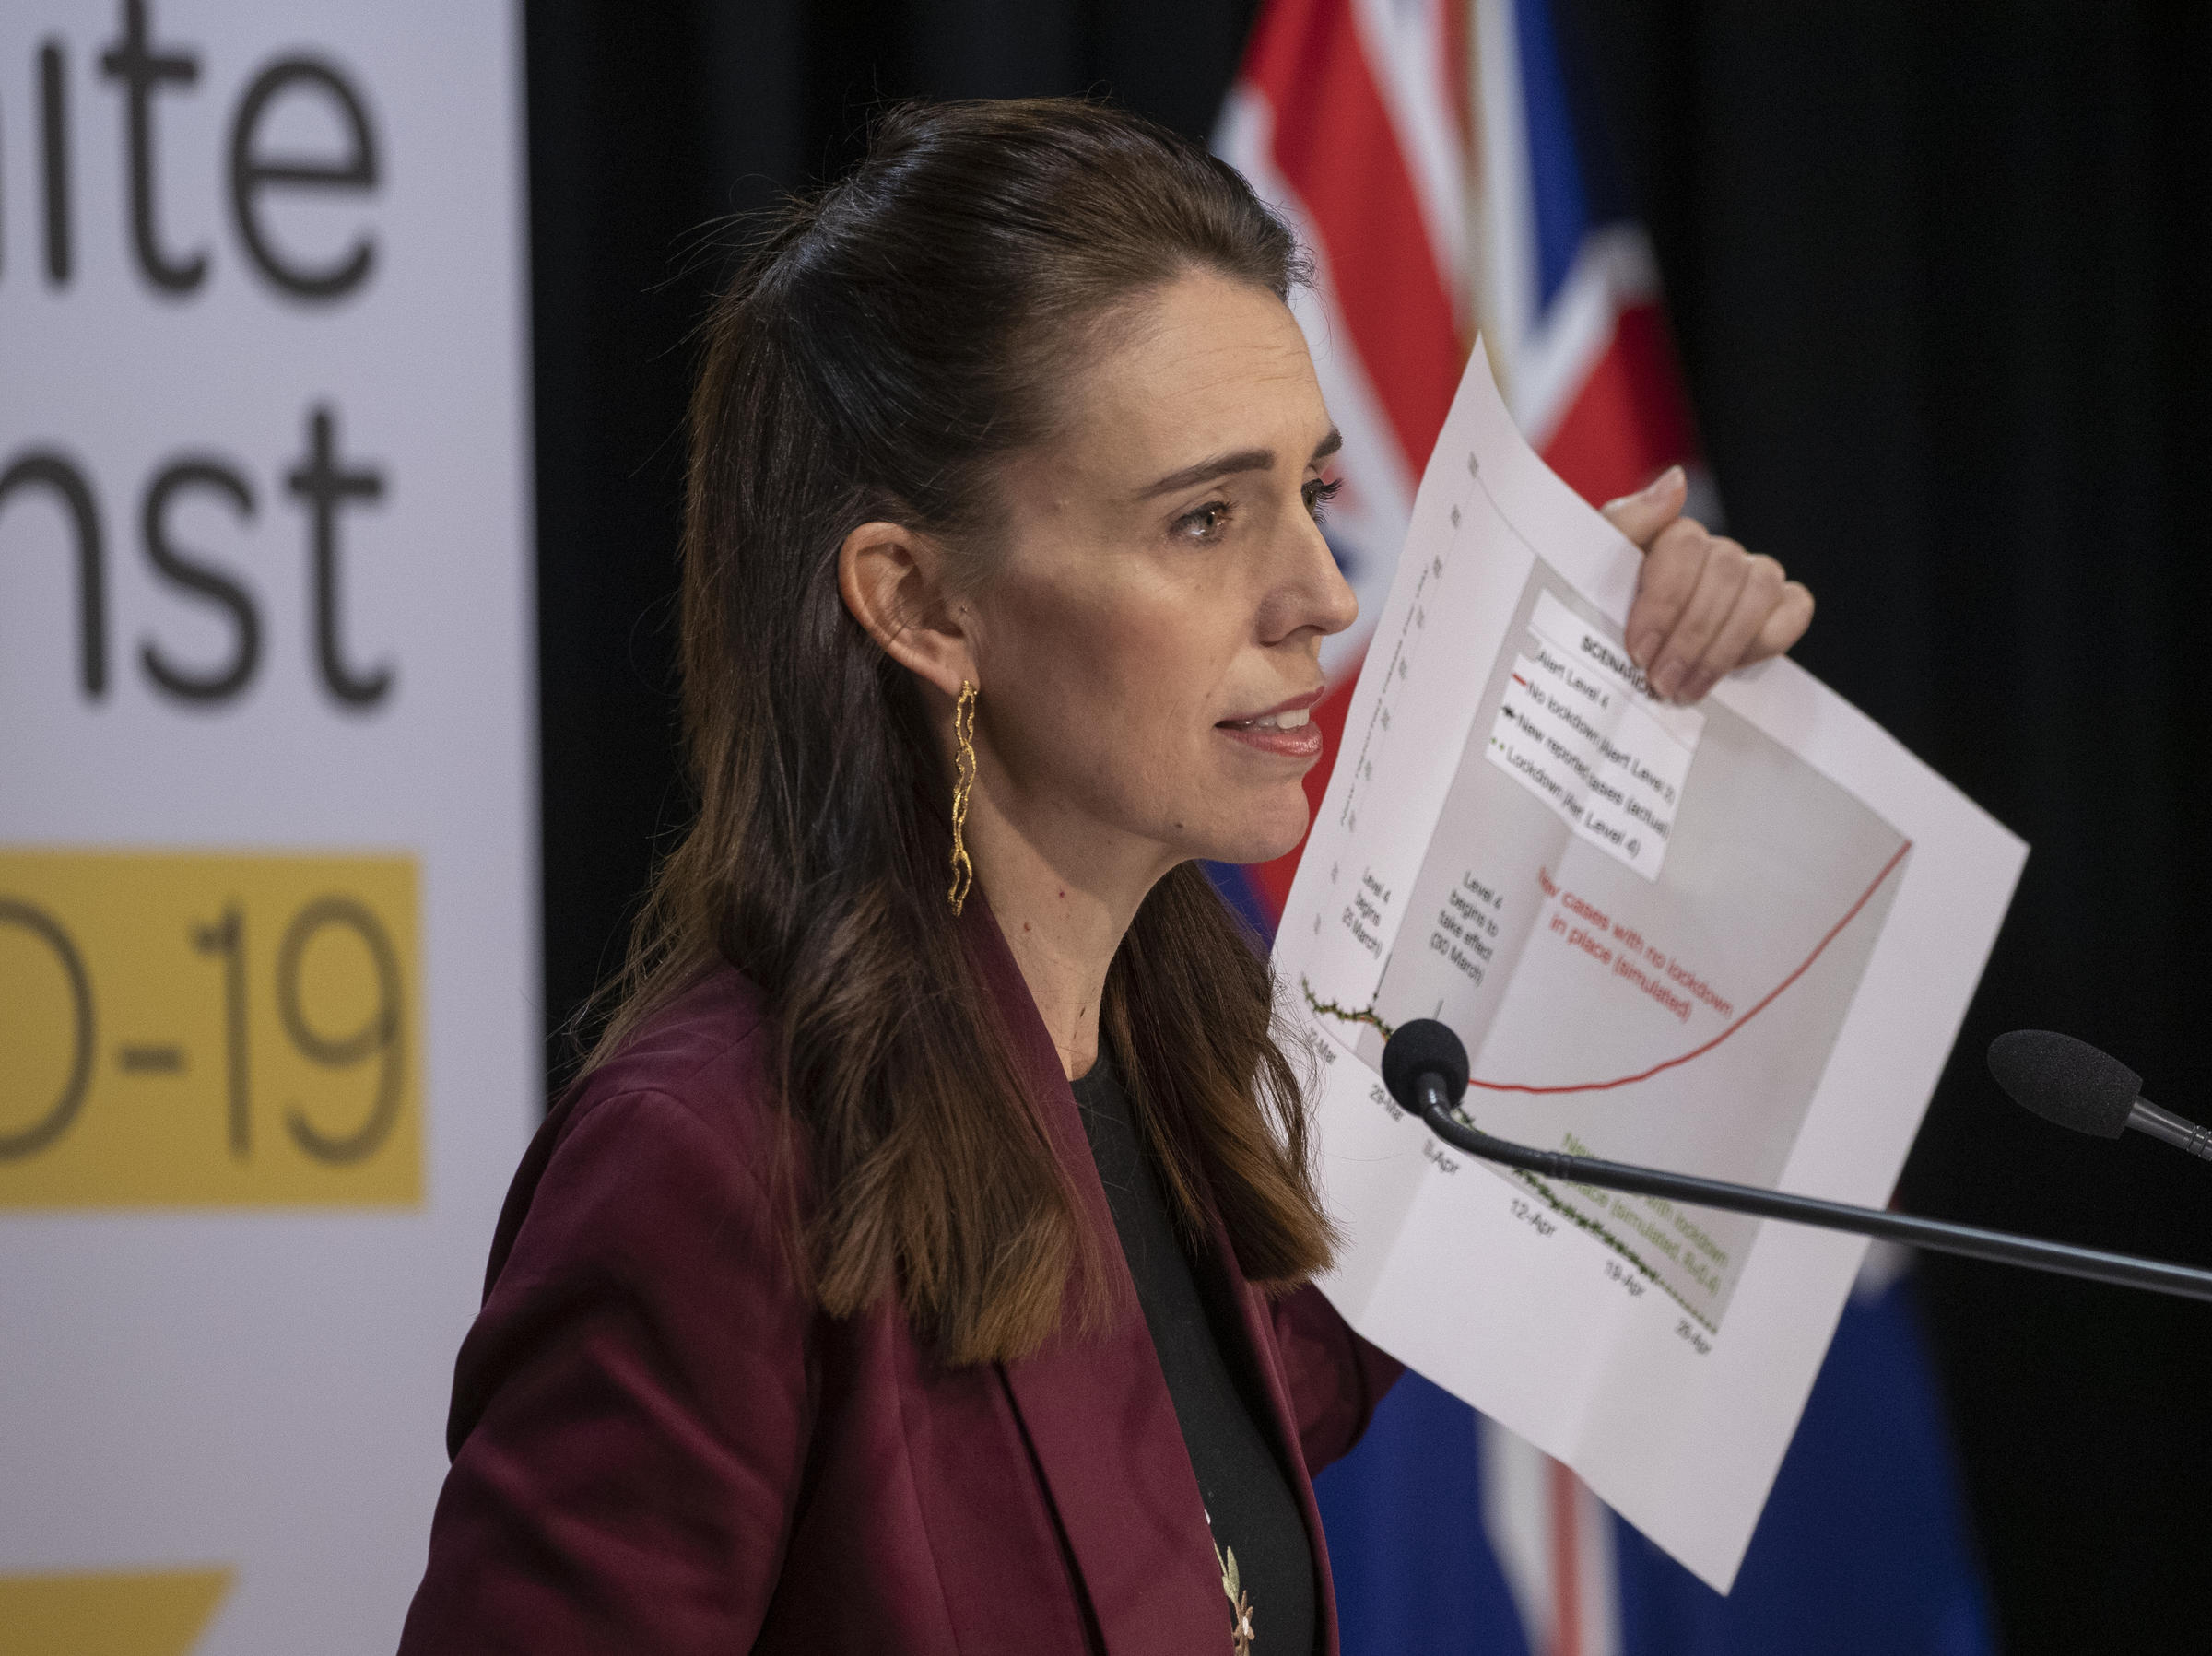 New Zealand stops community transmission of COVID19